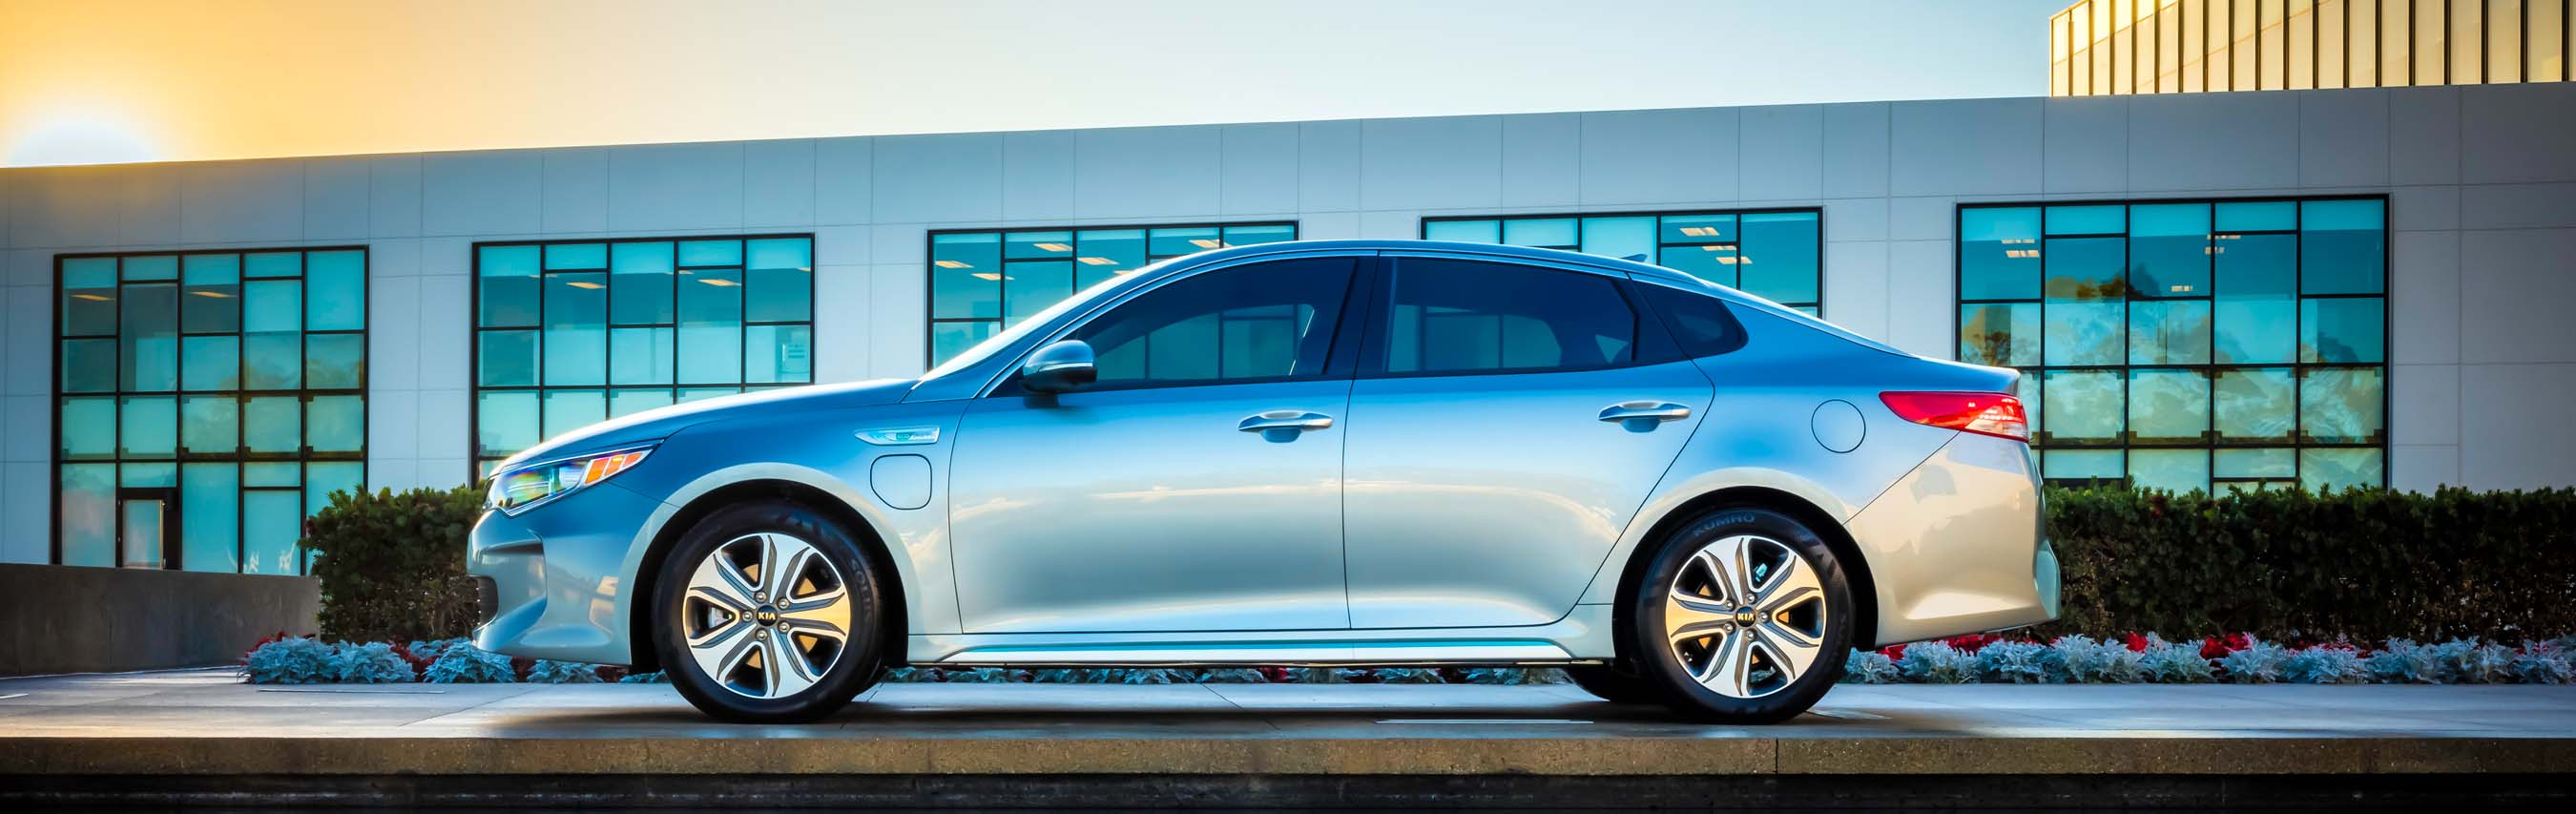 All New 2017 Kia Optima Plug In Hybrid Makes Global Debut At Chicago